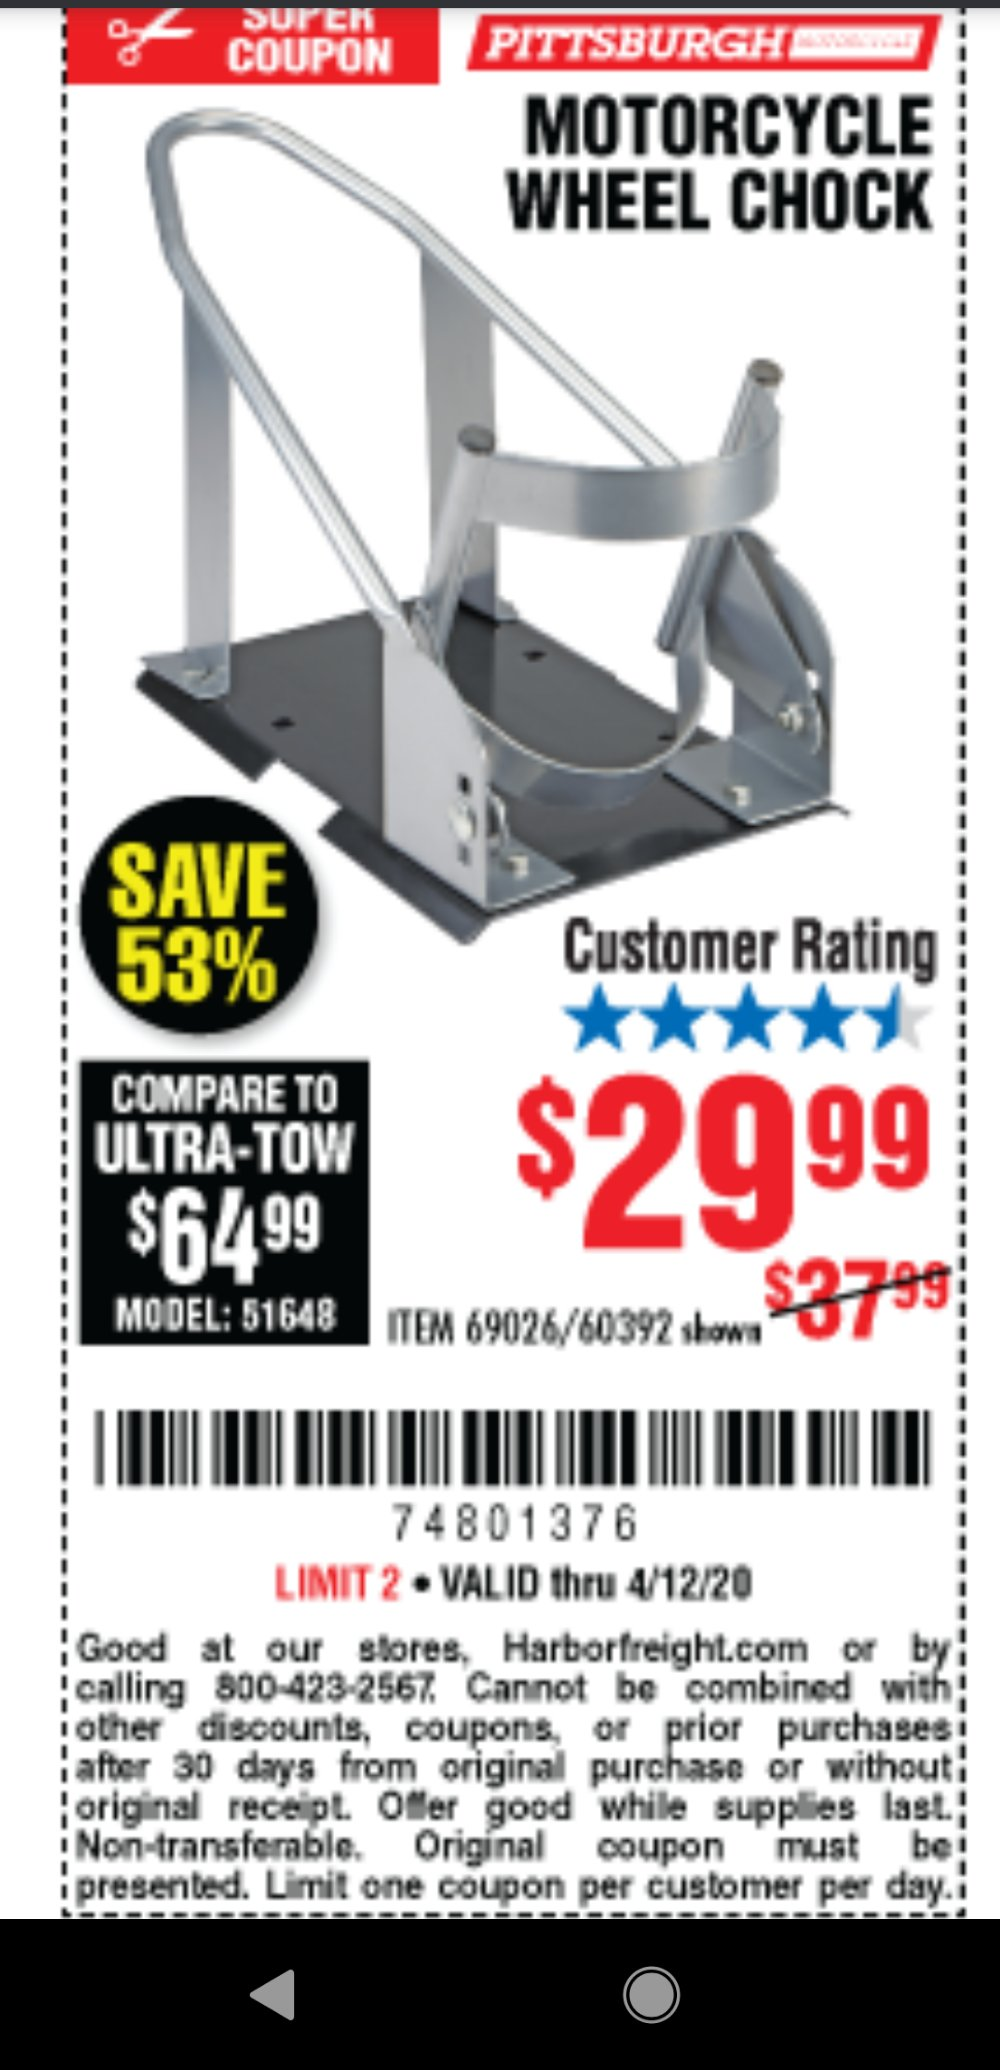 Harbor Freight Coupon, HF Coupons - Motorcycle Wheel